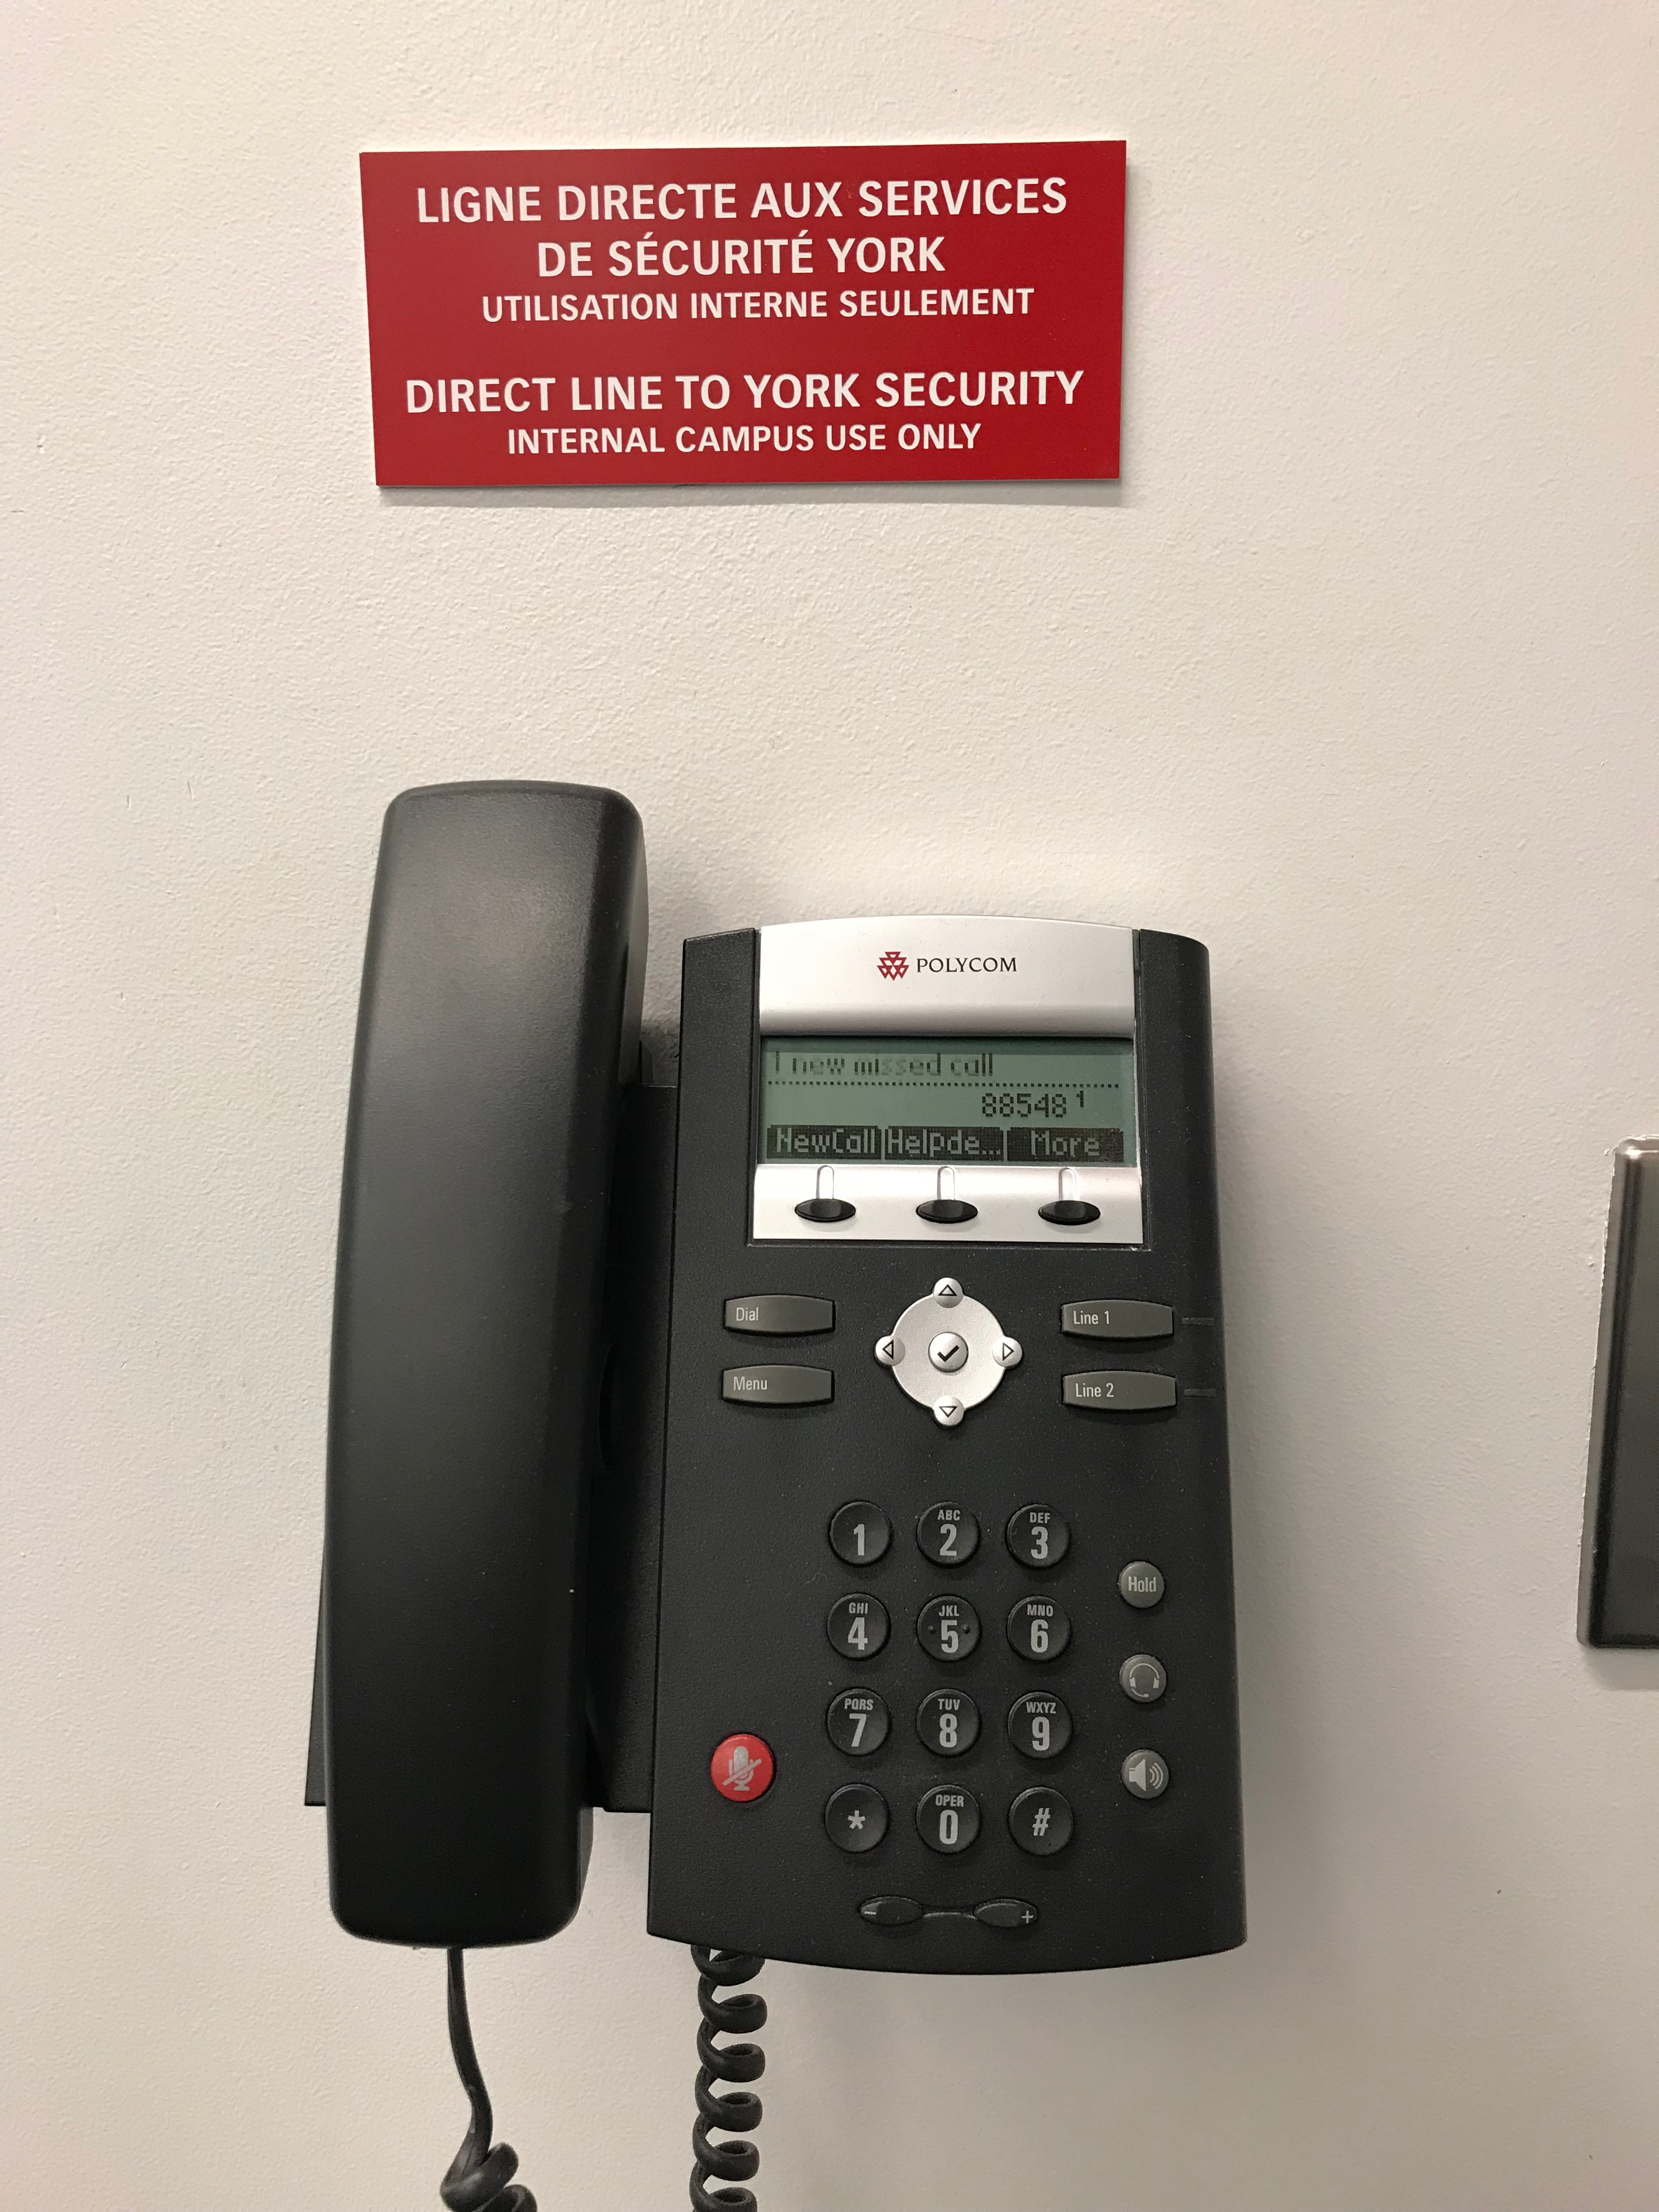 Phone Mounted to Wall With Signage of Direct Line to York Security